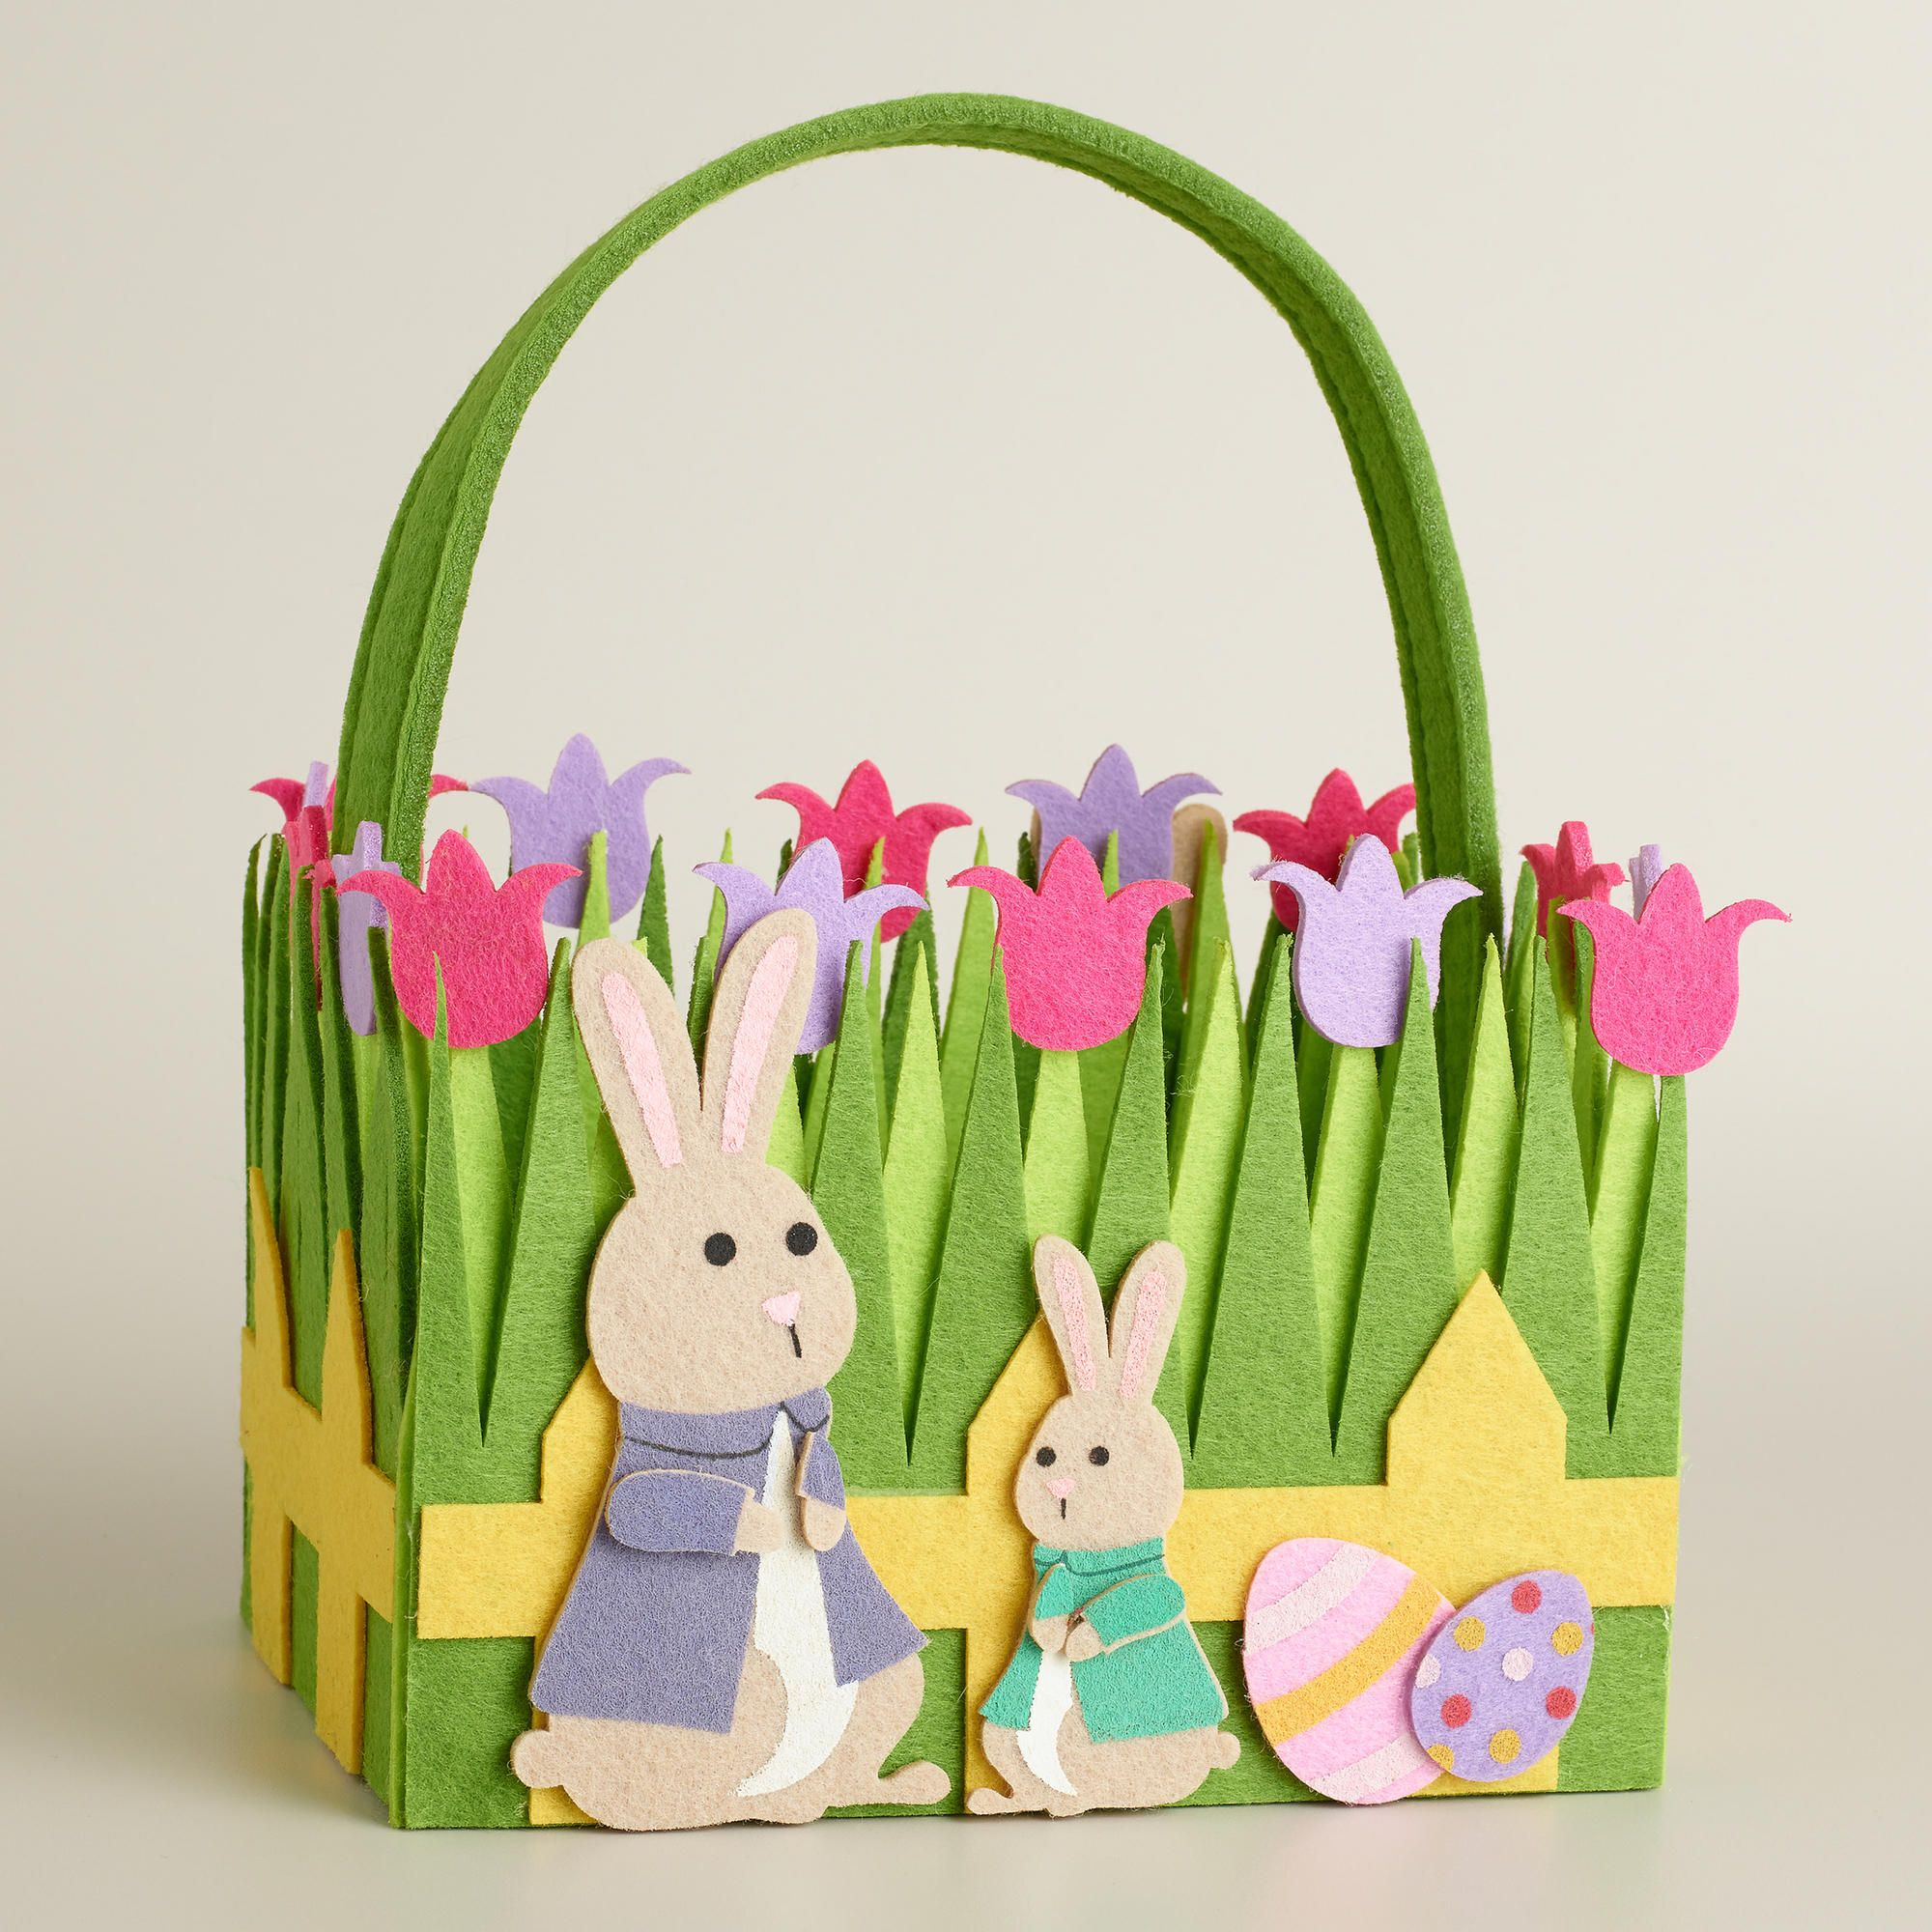 Adorable diy easter basket craft with lovely flowers and green adorable diy easter basket craft with lovely flowers and green grass and yellow fences also adorable negle Gallery